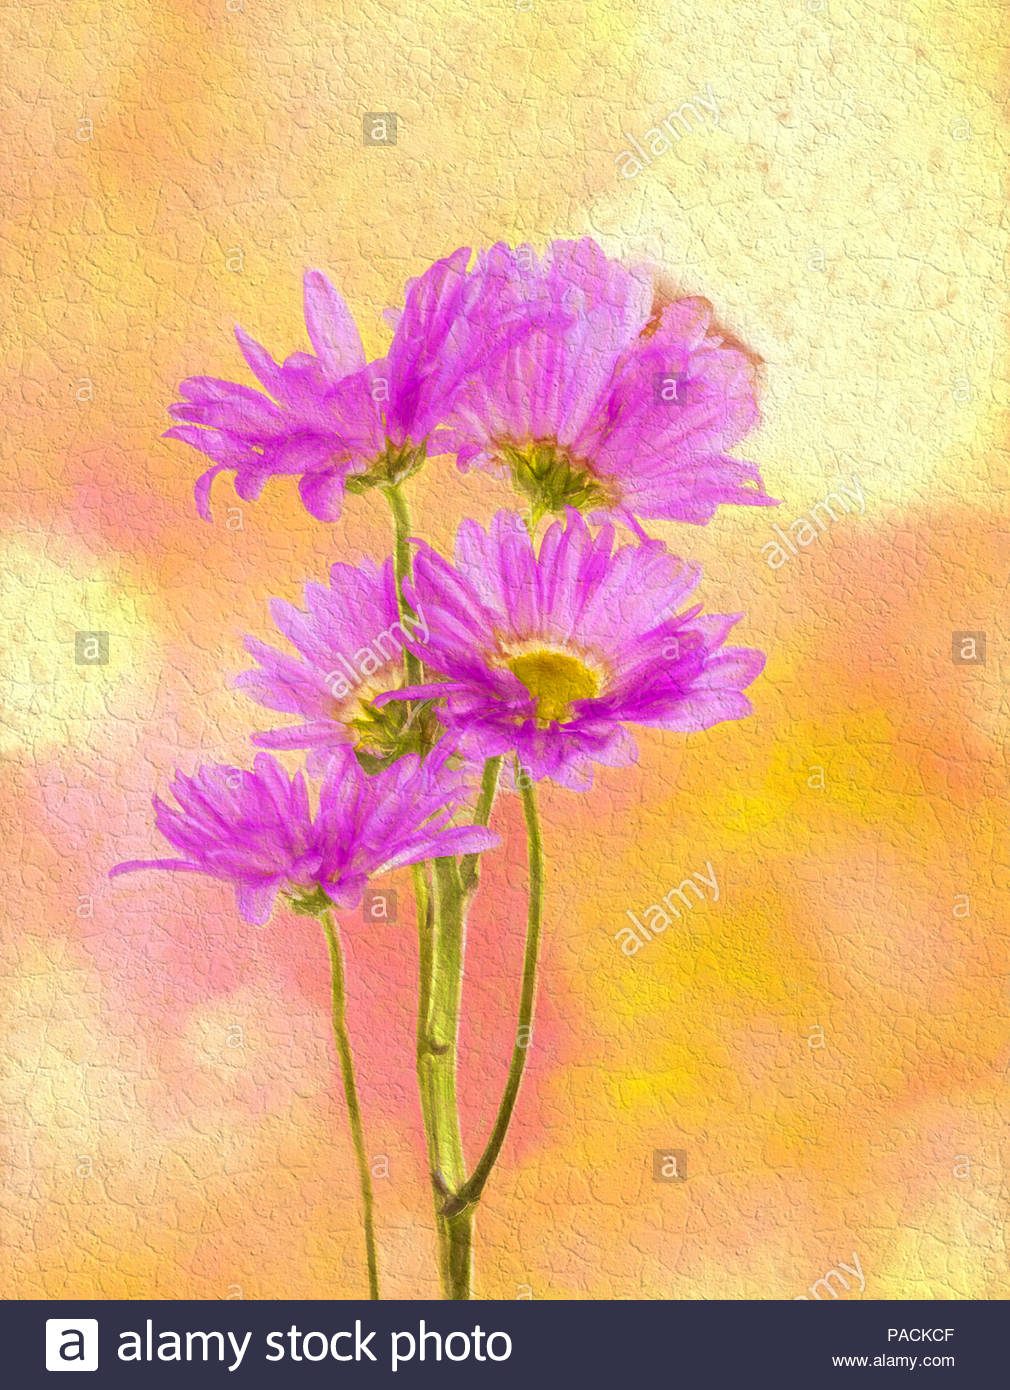 Pink Chrysanthemums or Mums against a yellow background Stock 1010x1390